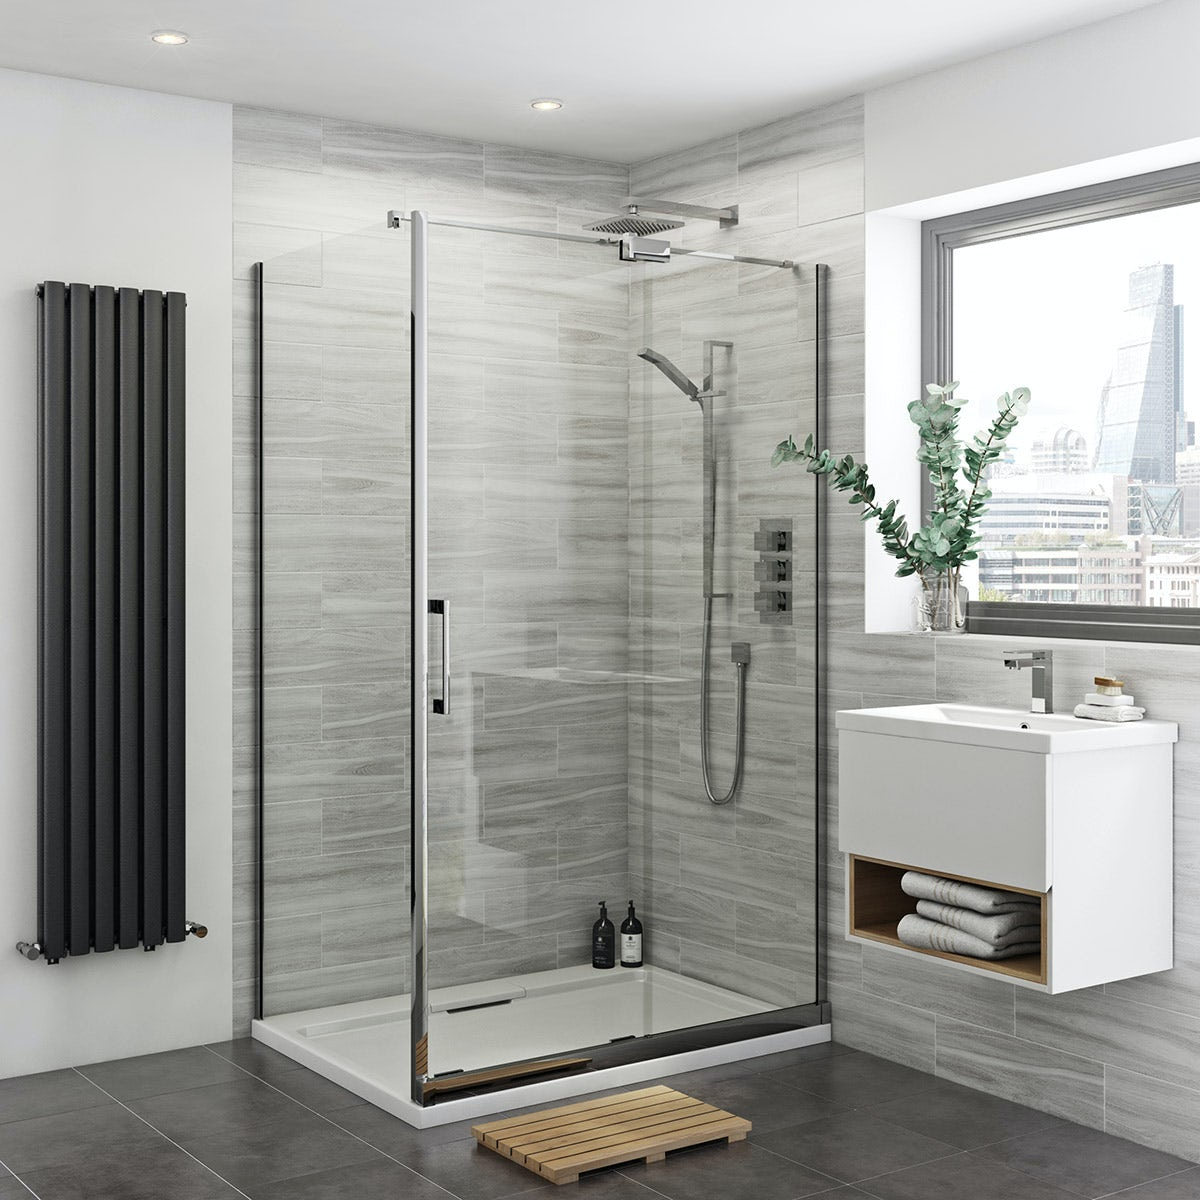 Mode glaser premium 8mm easy clean rh shower enclosure for Bathroom w c meaning